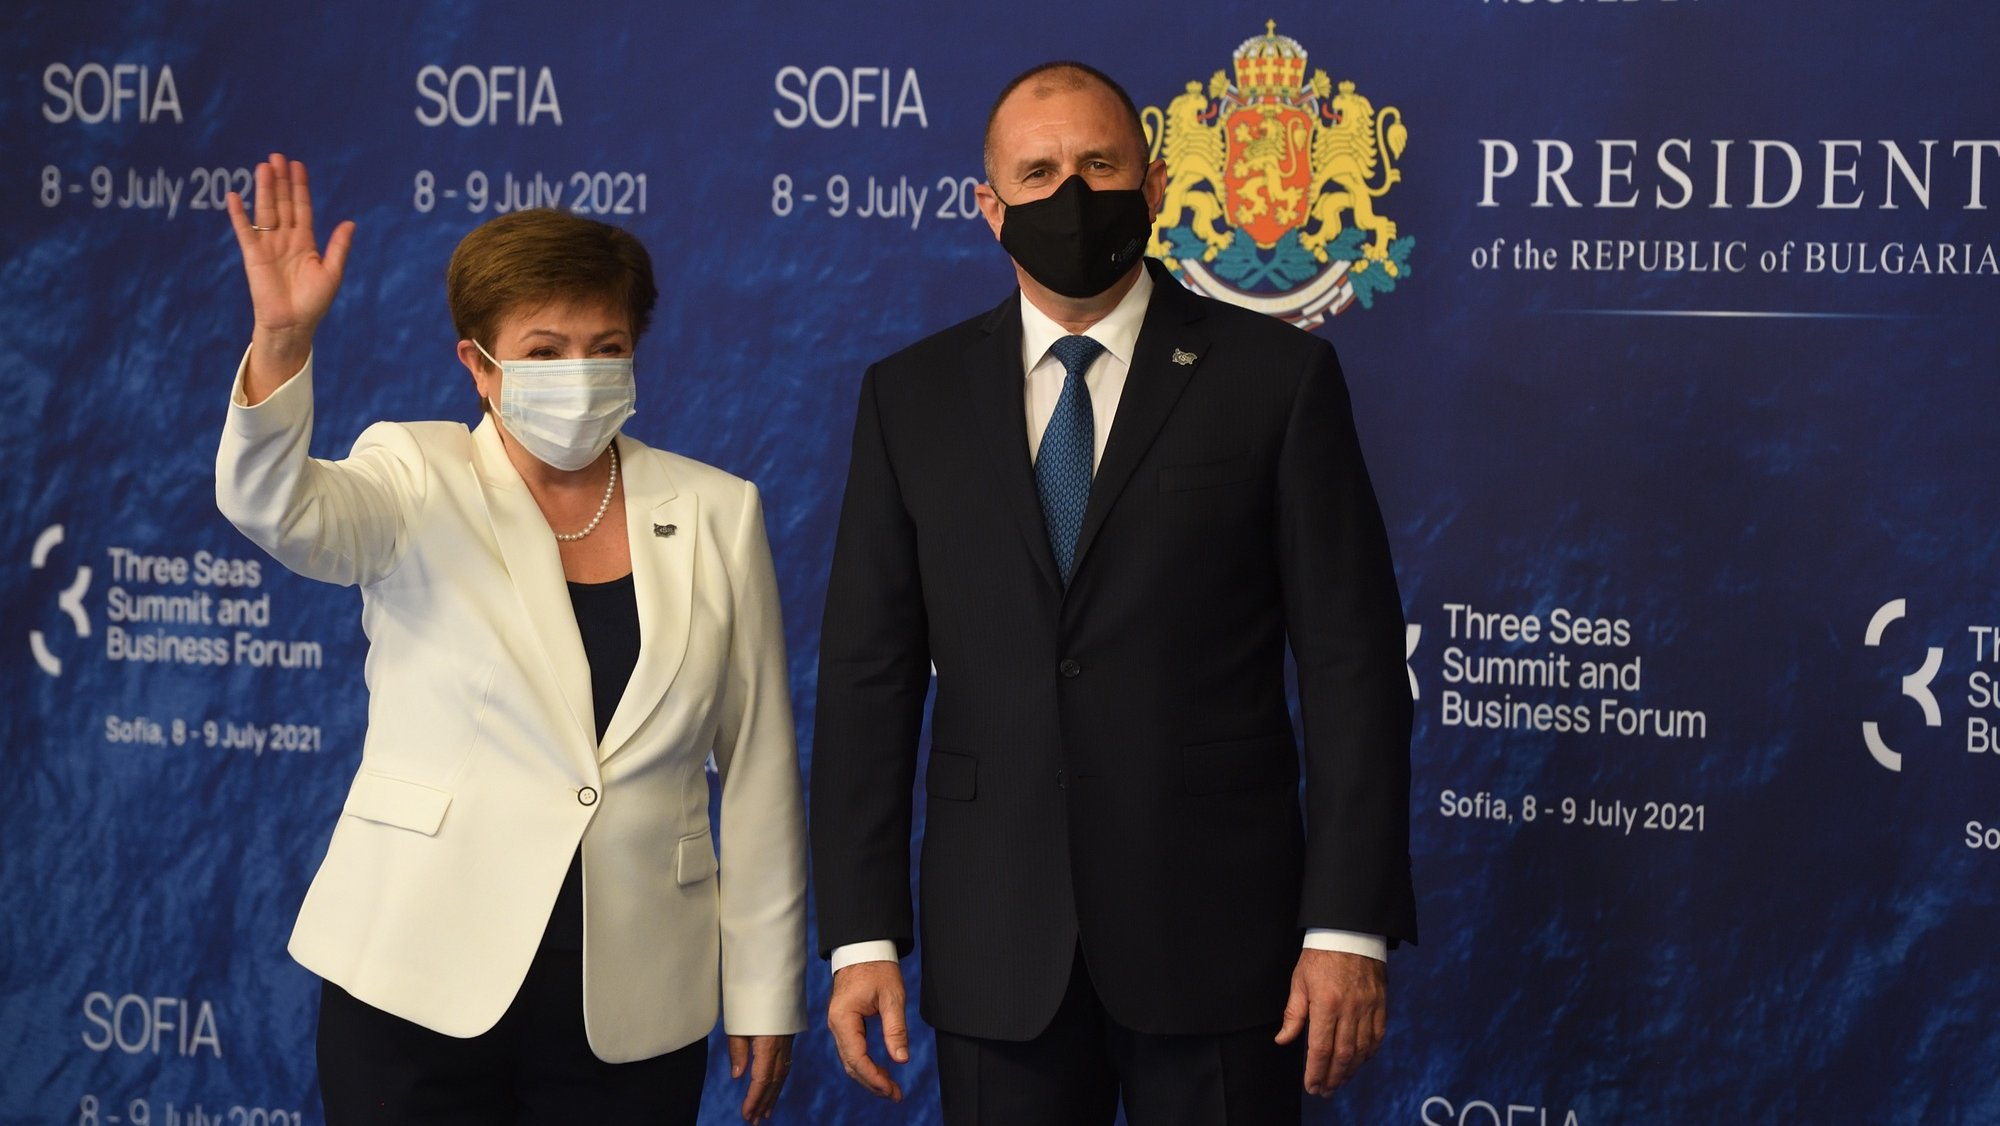 epa09331311 Bulgarian President Rumen Radev (R) welcomes Managing Director of the International Monetary Fund (IMF), Kristalina Georgieva (L) during the opening of the sixth Summit of the Three Seas and Business Forum in Sofia, Bulgaria, 08 July 2021. The summit and business forum of the Three Seas Initiative will be held on 08 and 09 July 2021 at the National Palace of Culture in Sofia.  EPA/VASSIL DONEV